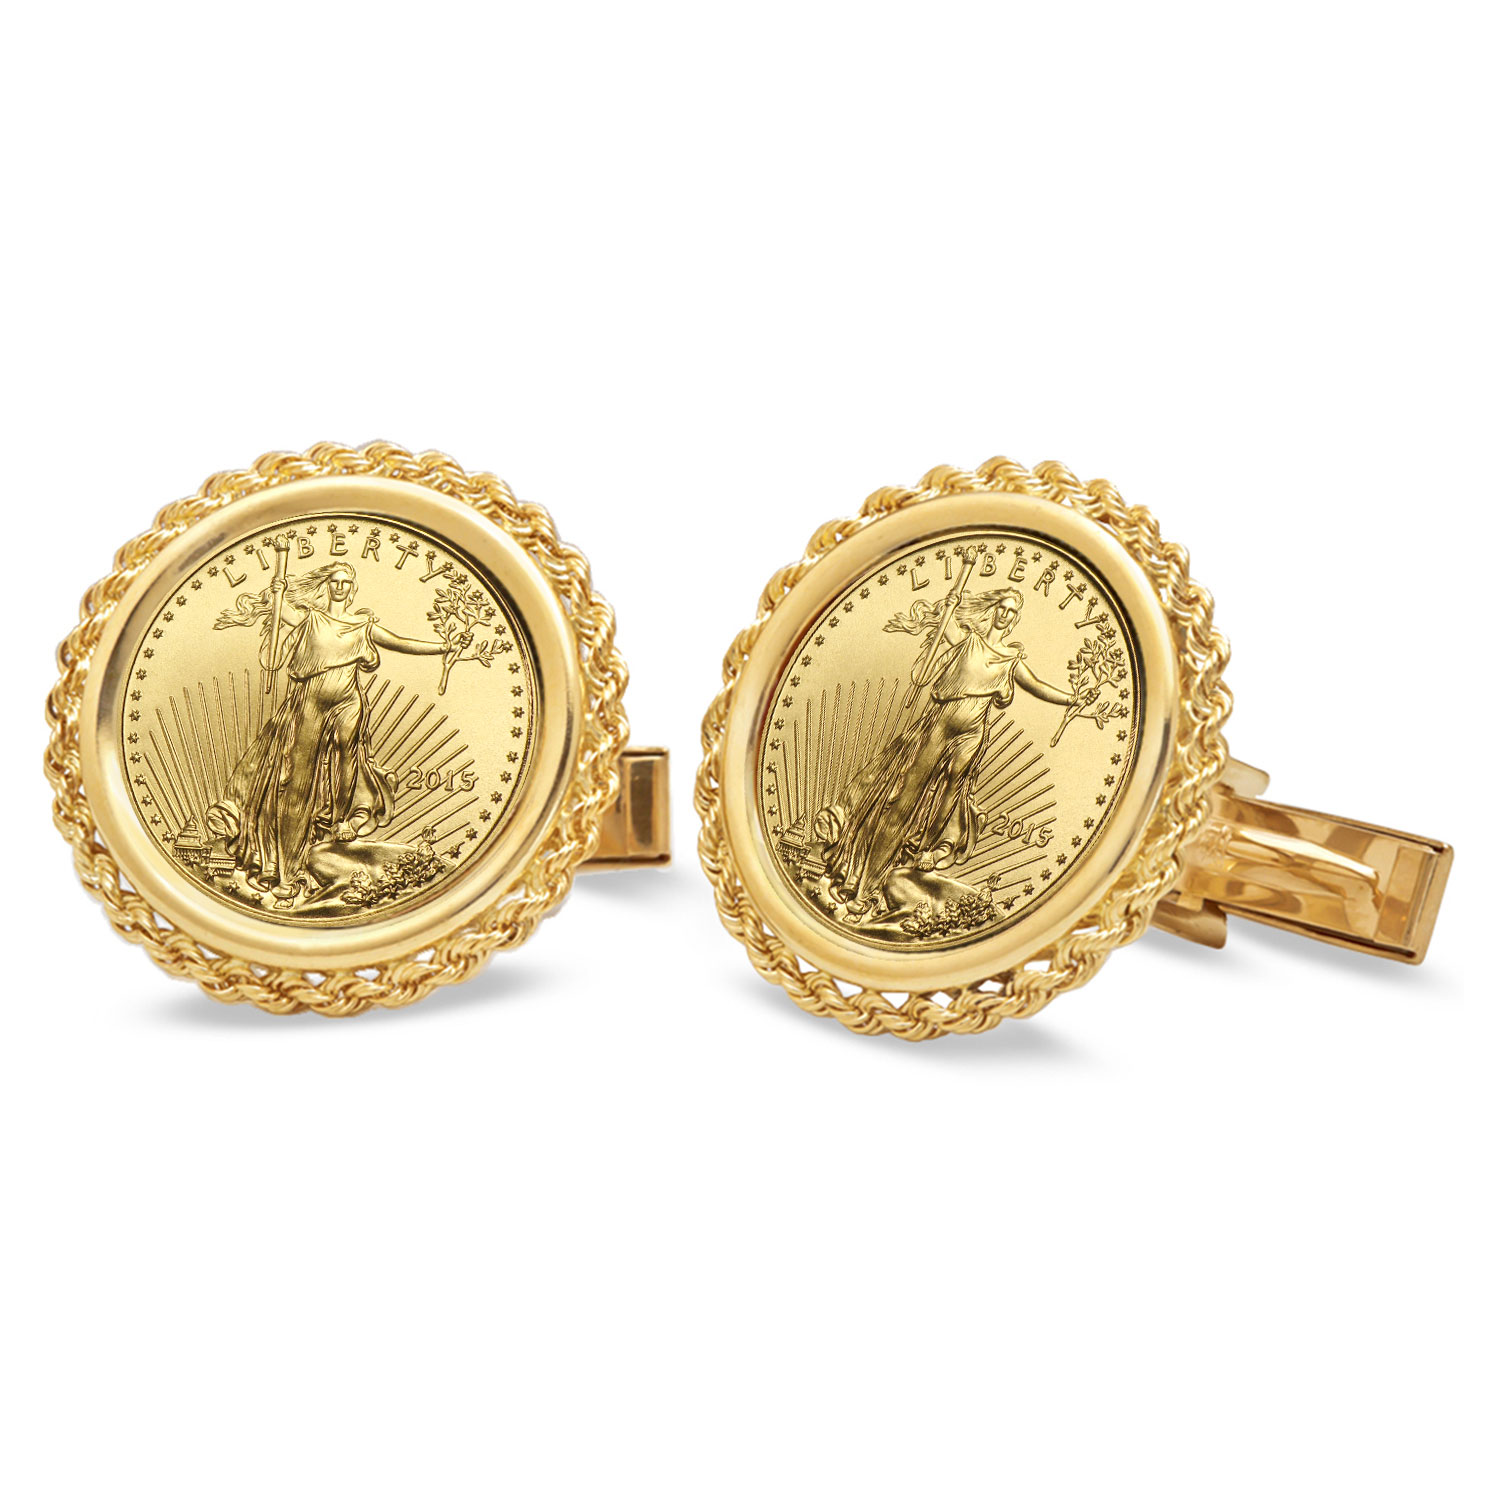 14k Gold Polished Rope Coin Cuff Links - 16.5mm